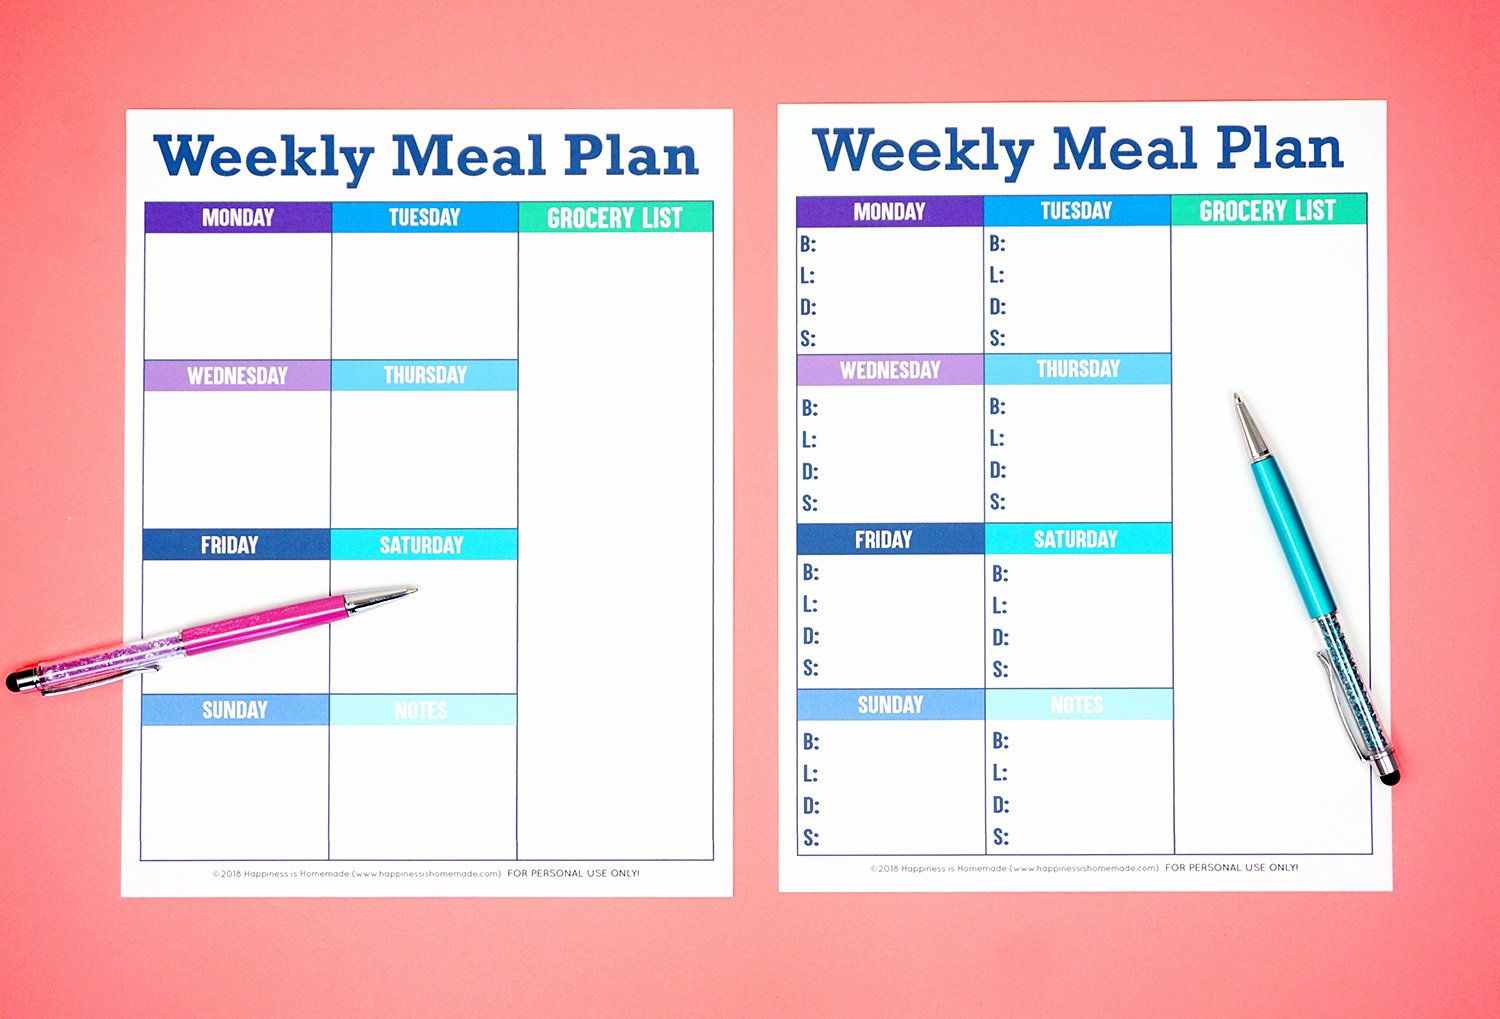 Menu Planner Template Free Awesome Printable Weekly Meal Planner Template Happiness is Homemade